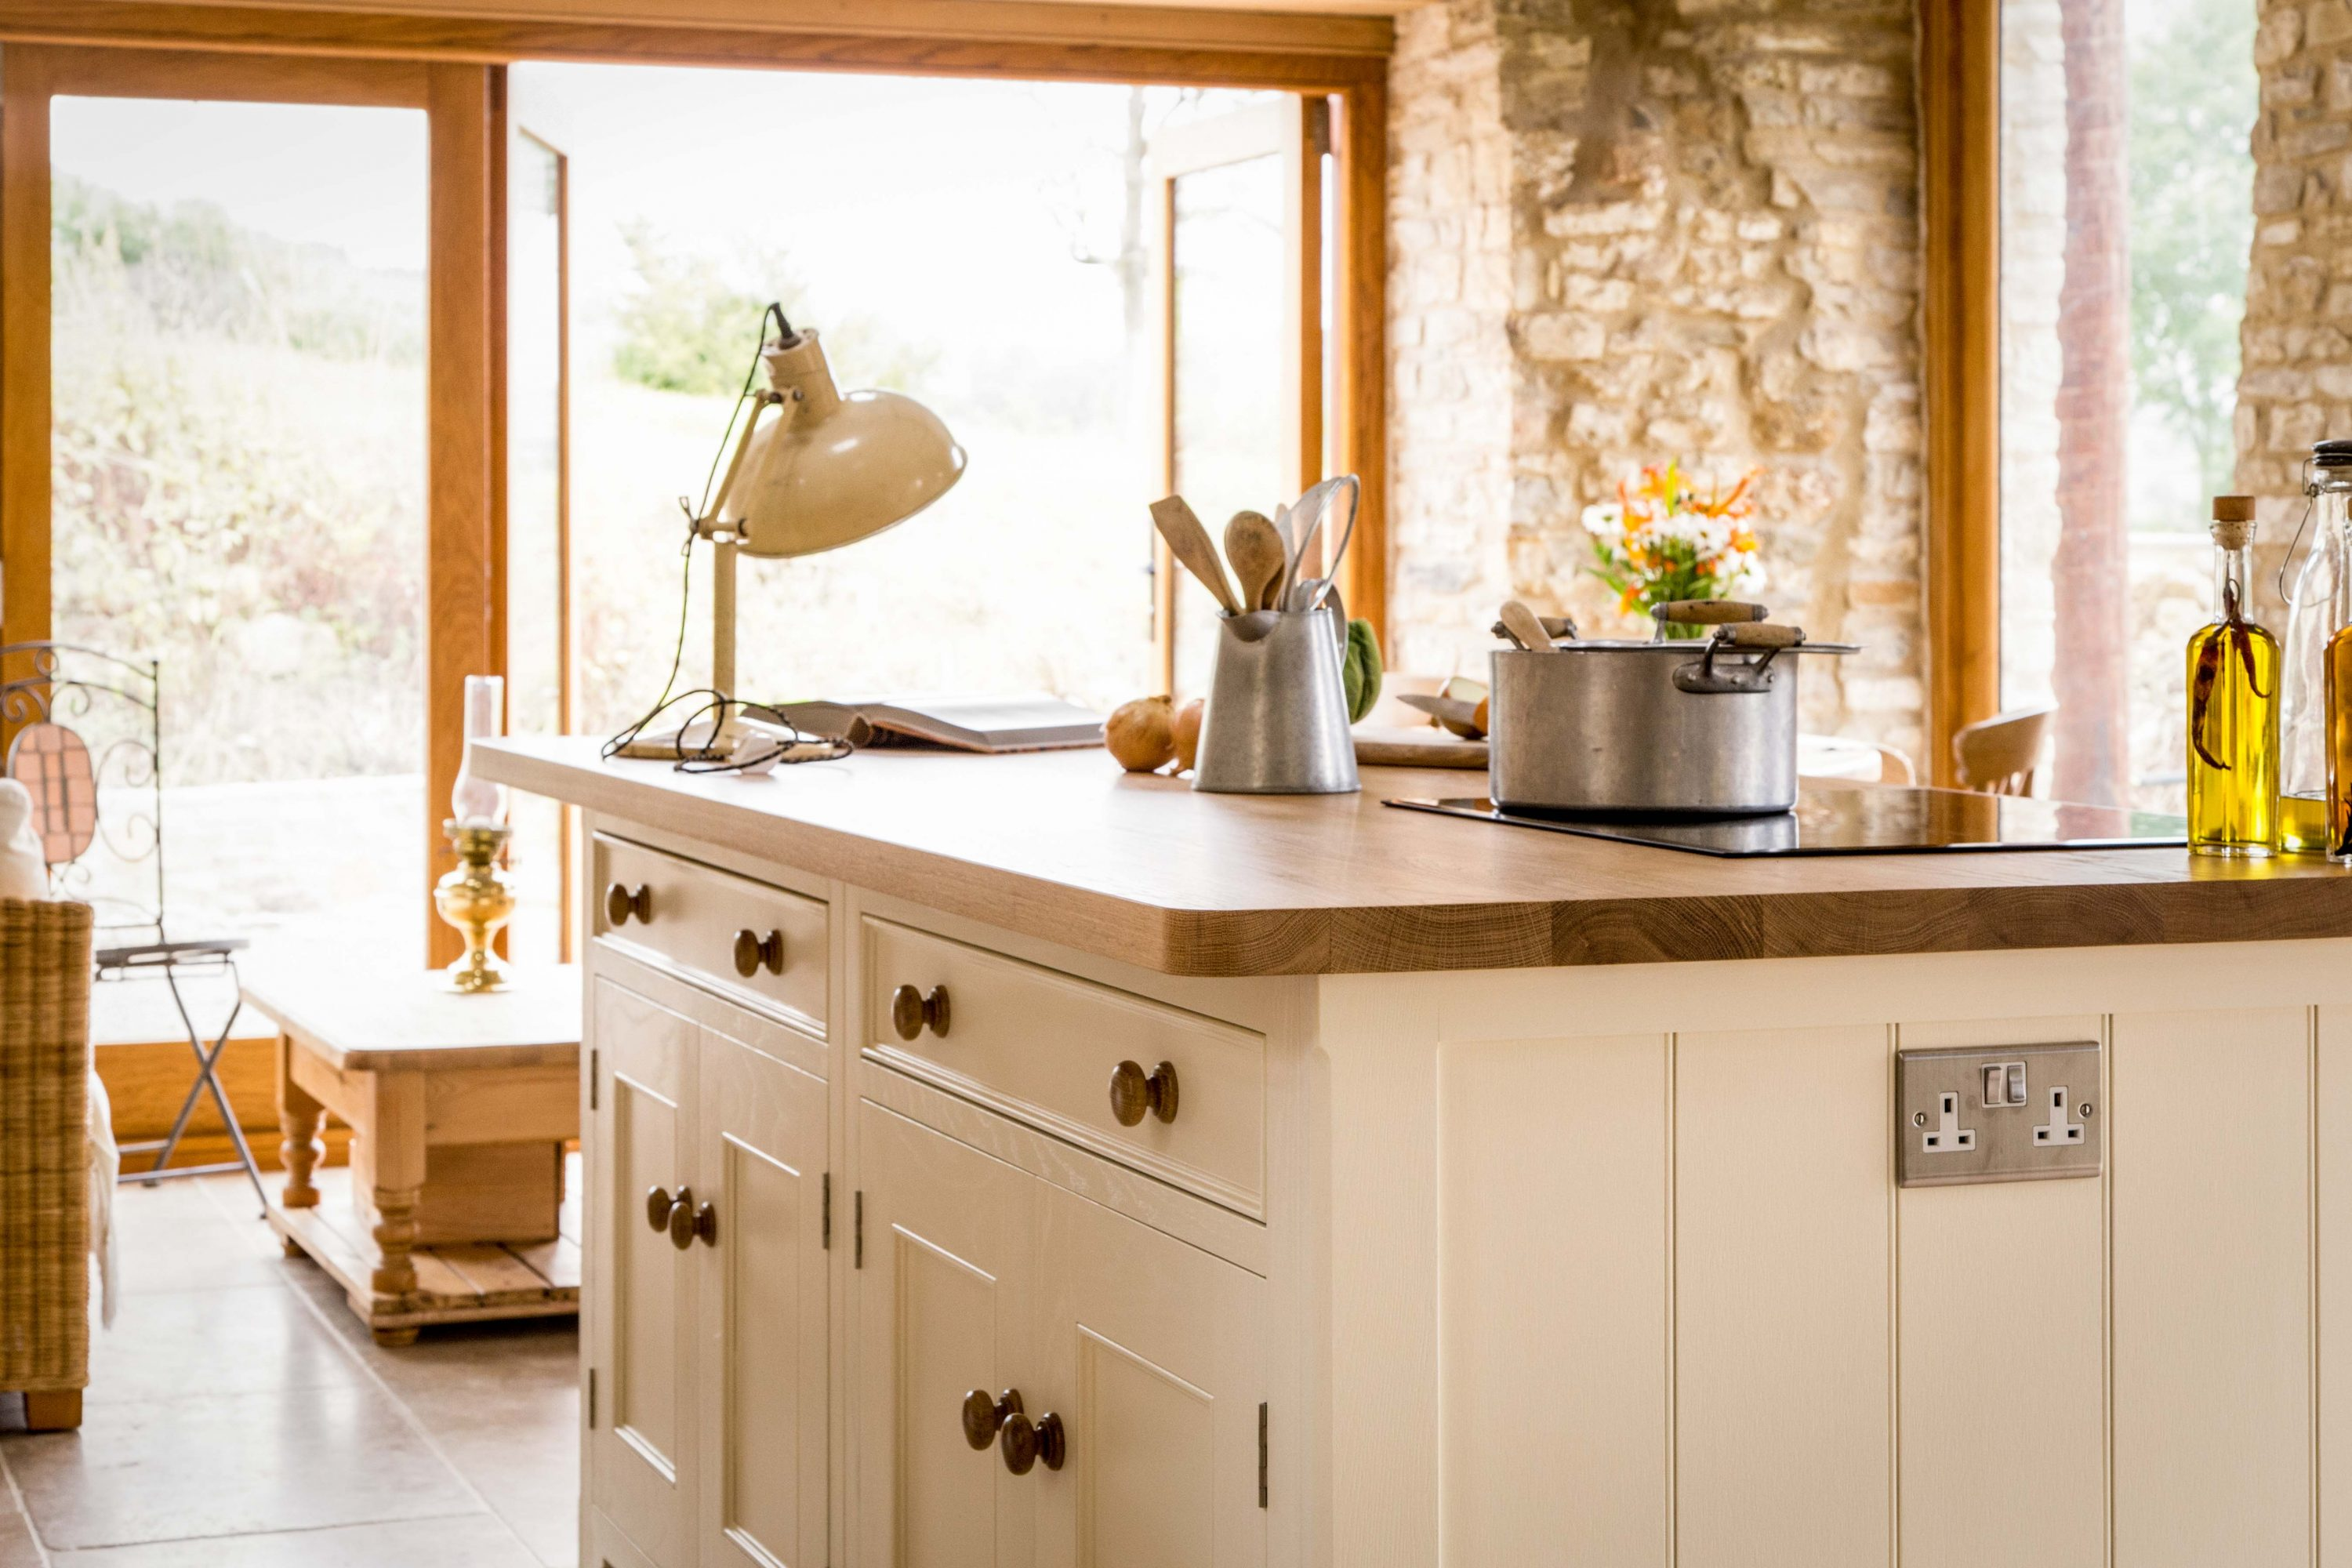 A Traditional Country Kitchen - Sustainable Kitchens